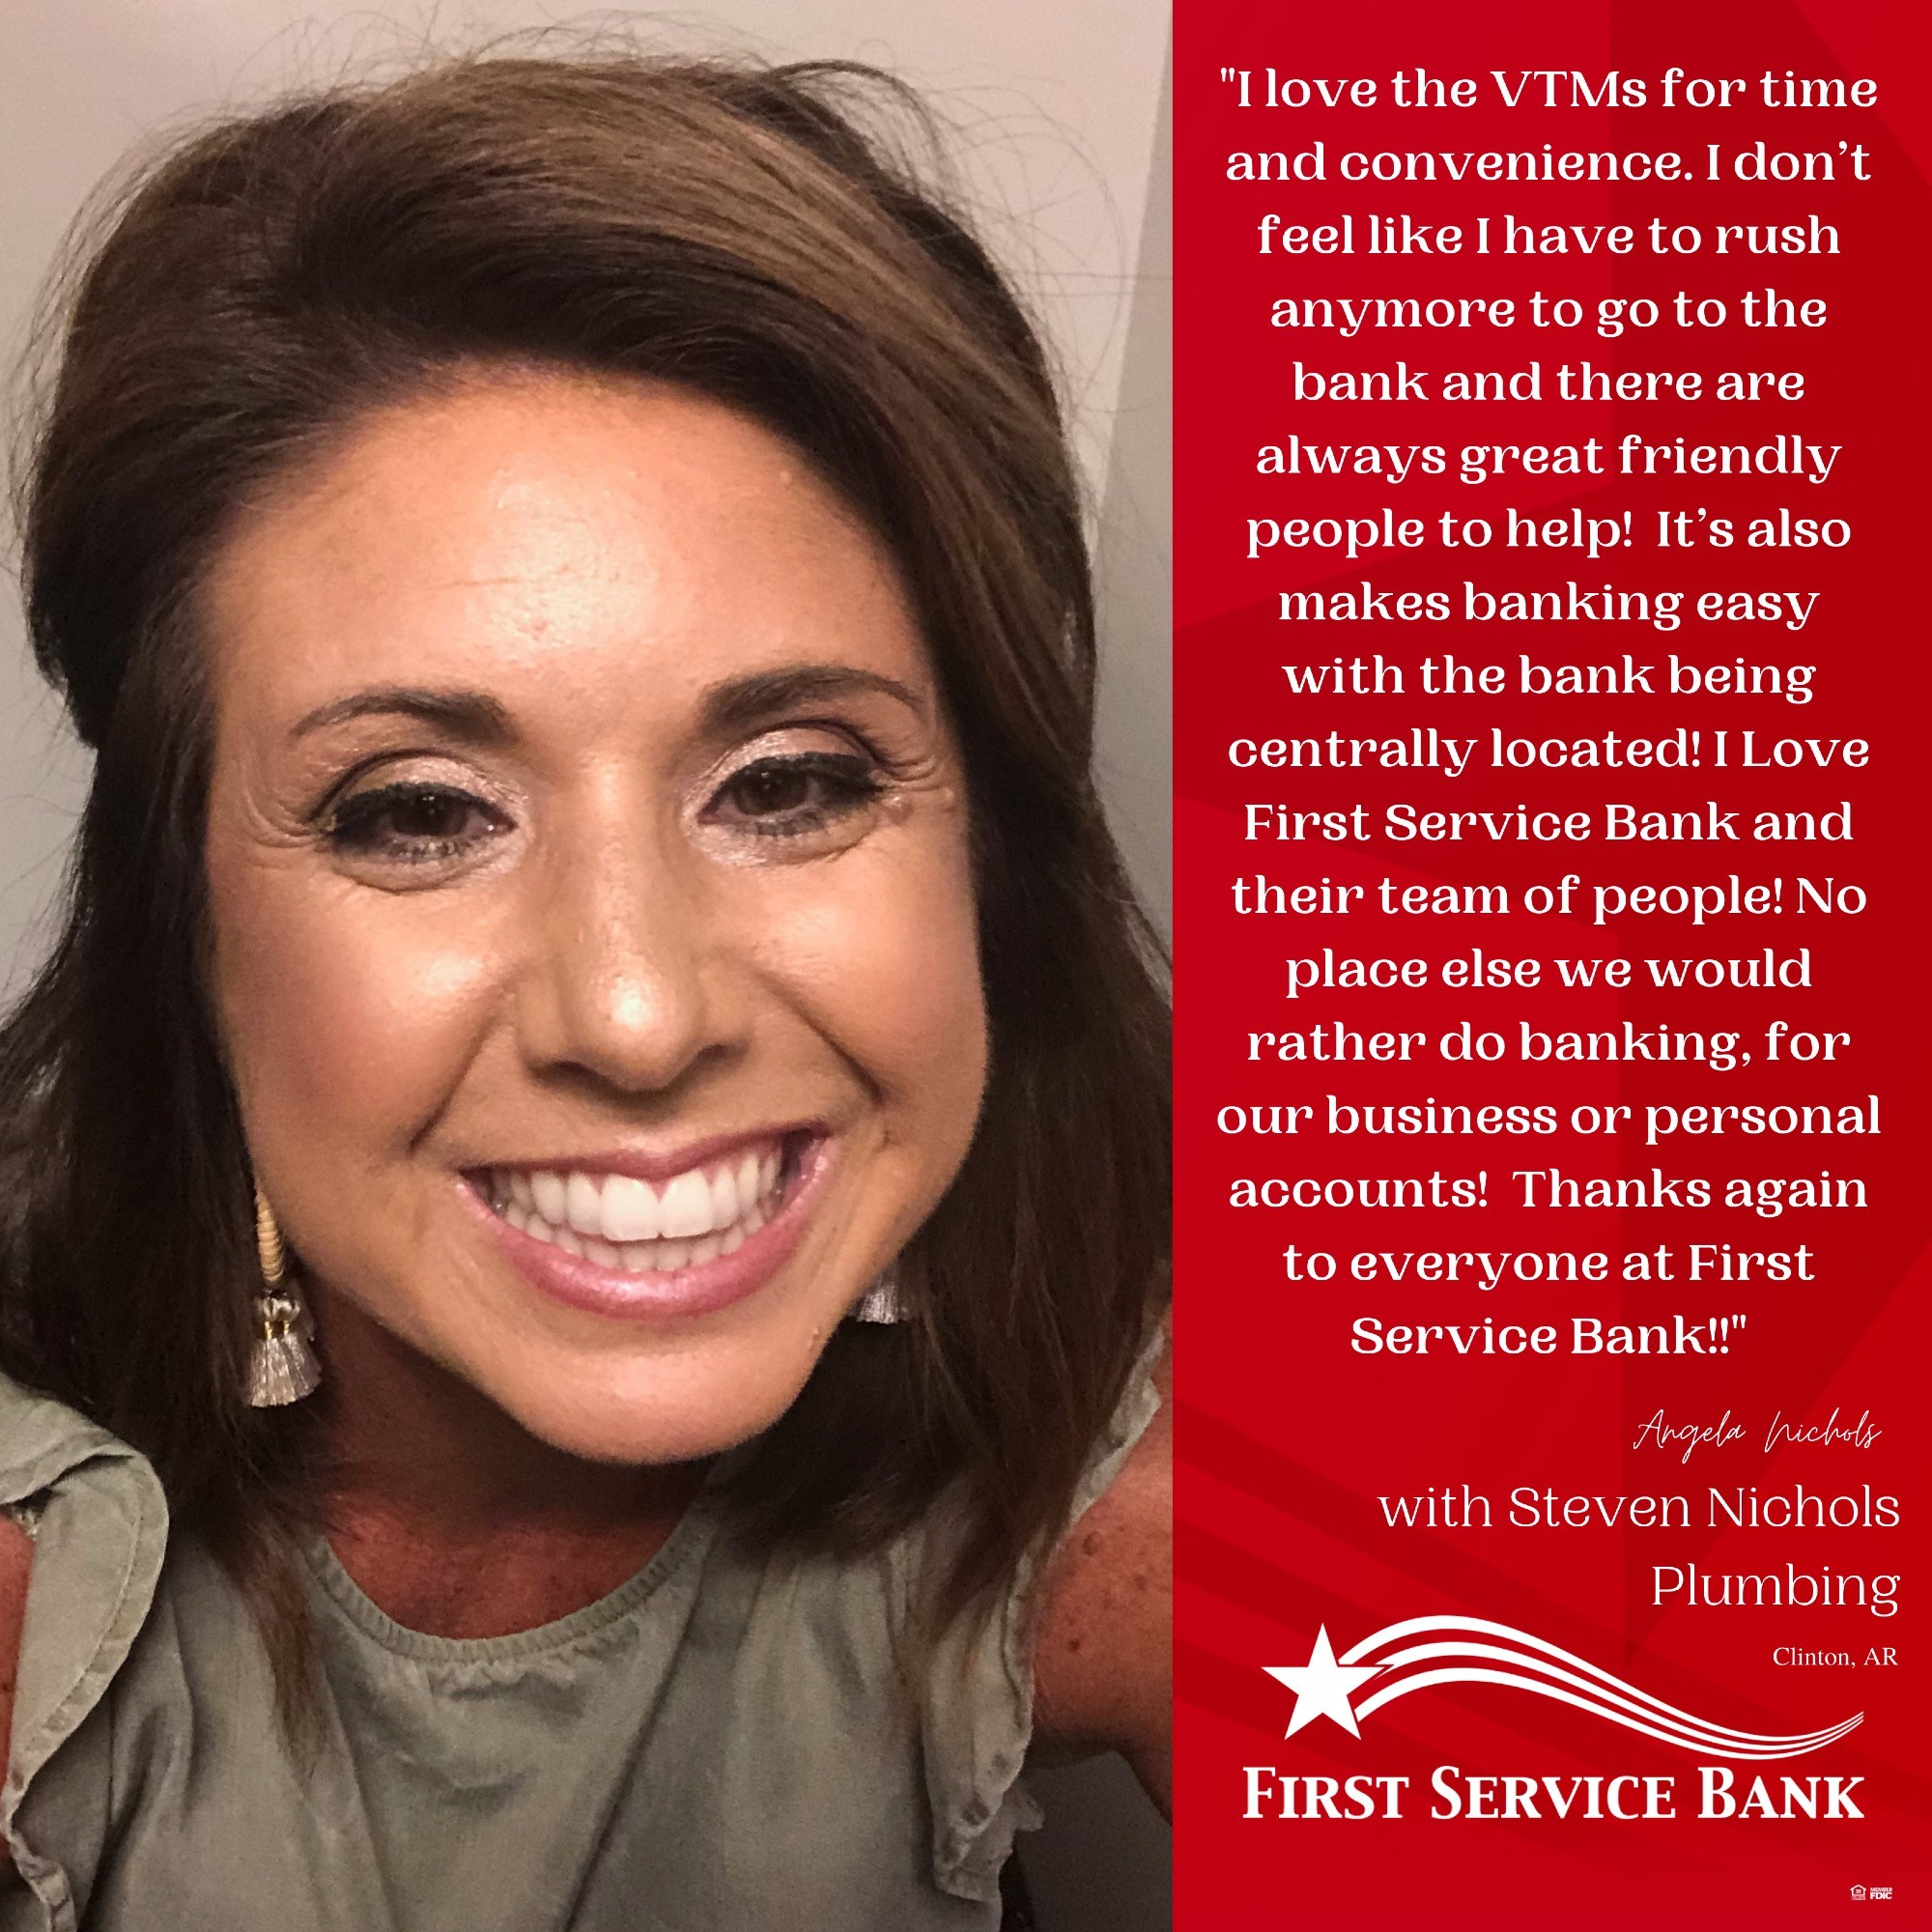 I Love First Service Bank and their team of people!